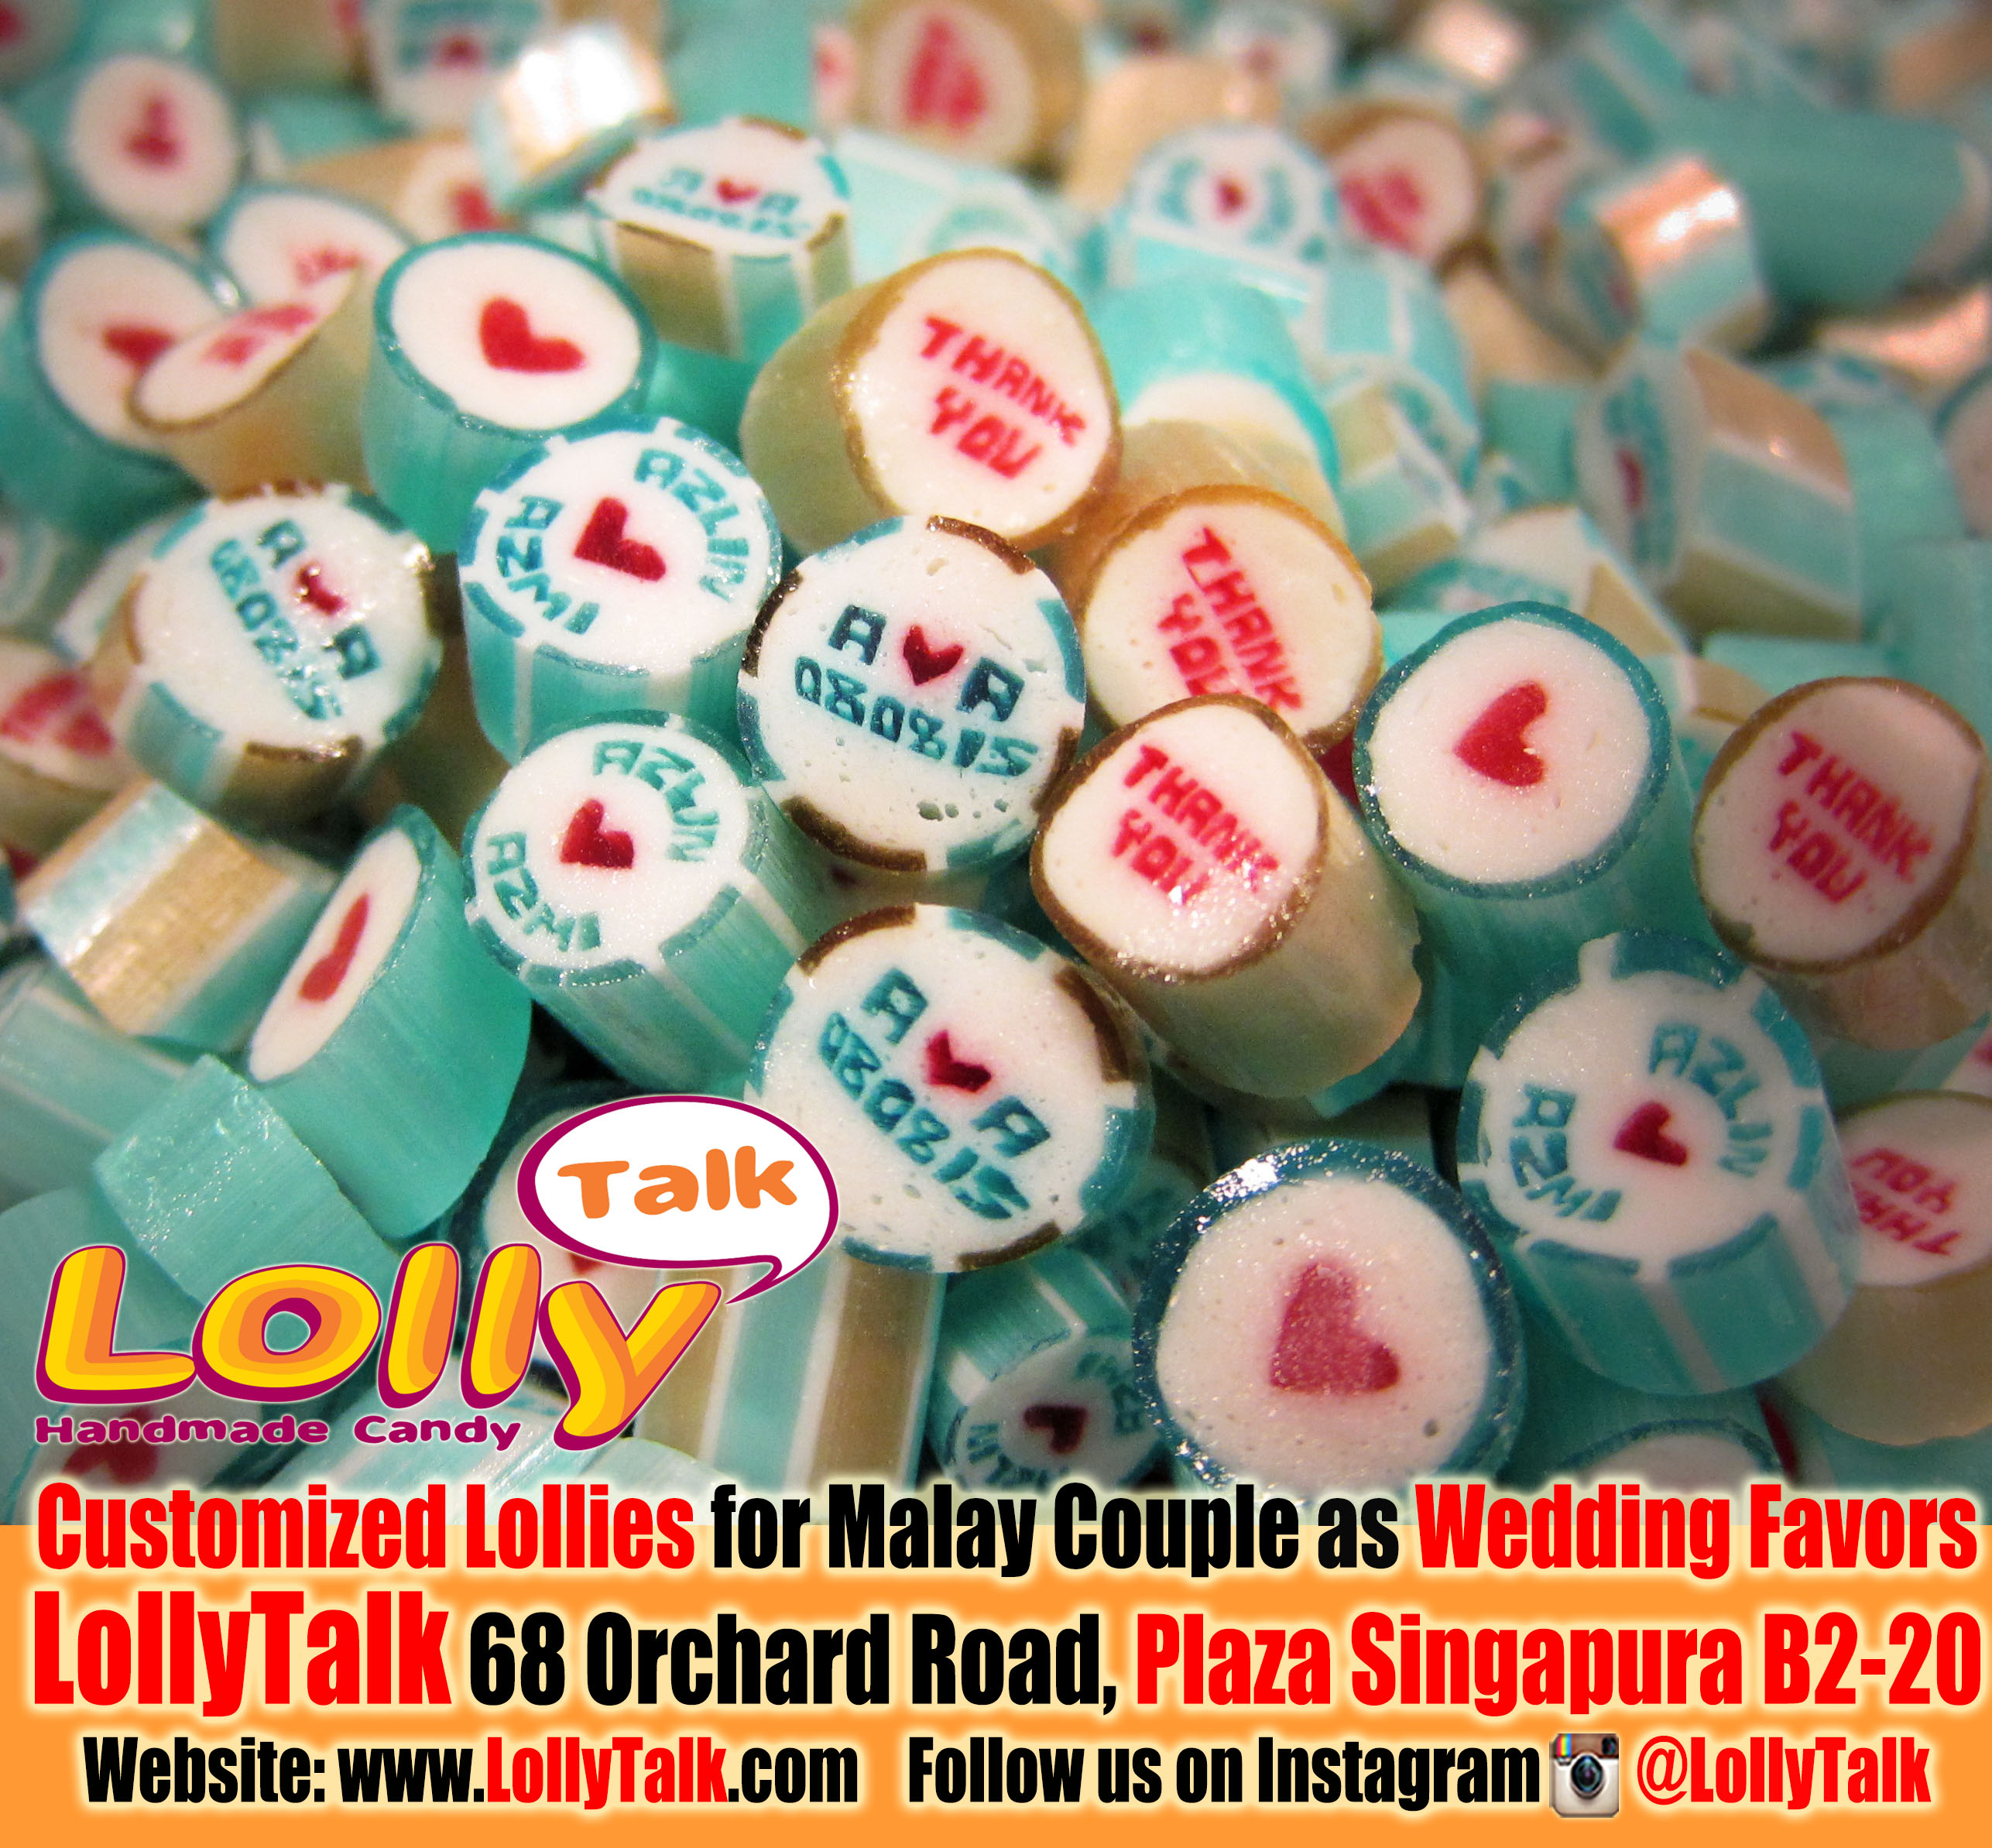 Wedding Candy By Lollytalk Customized Handmade Candy As Wedding Favors